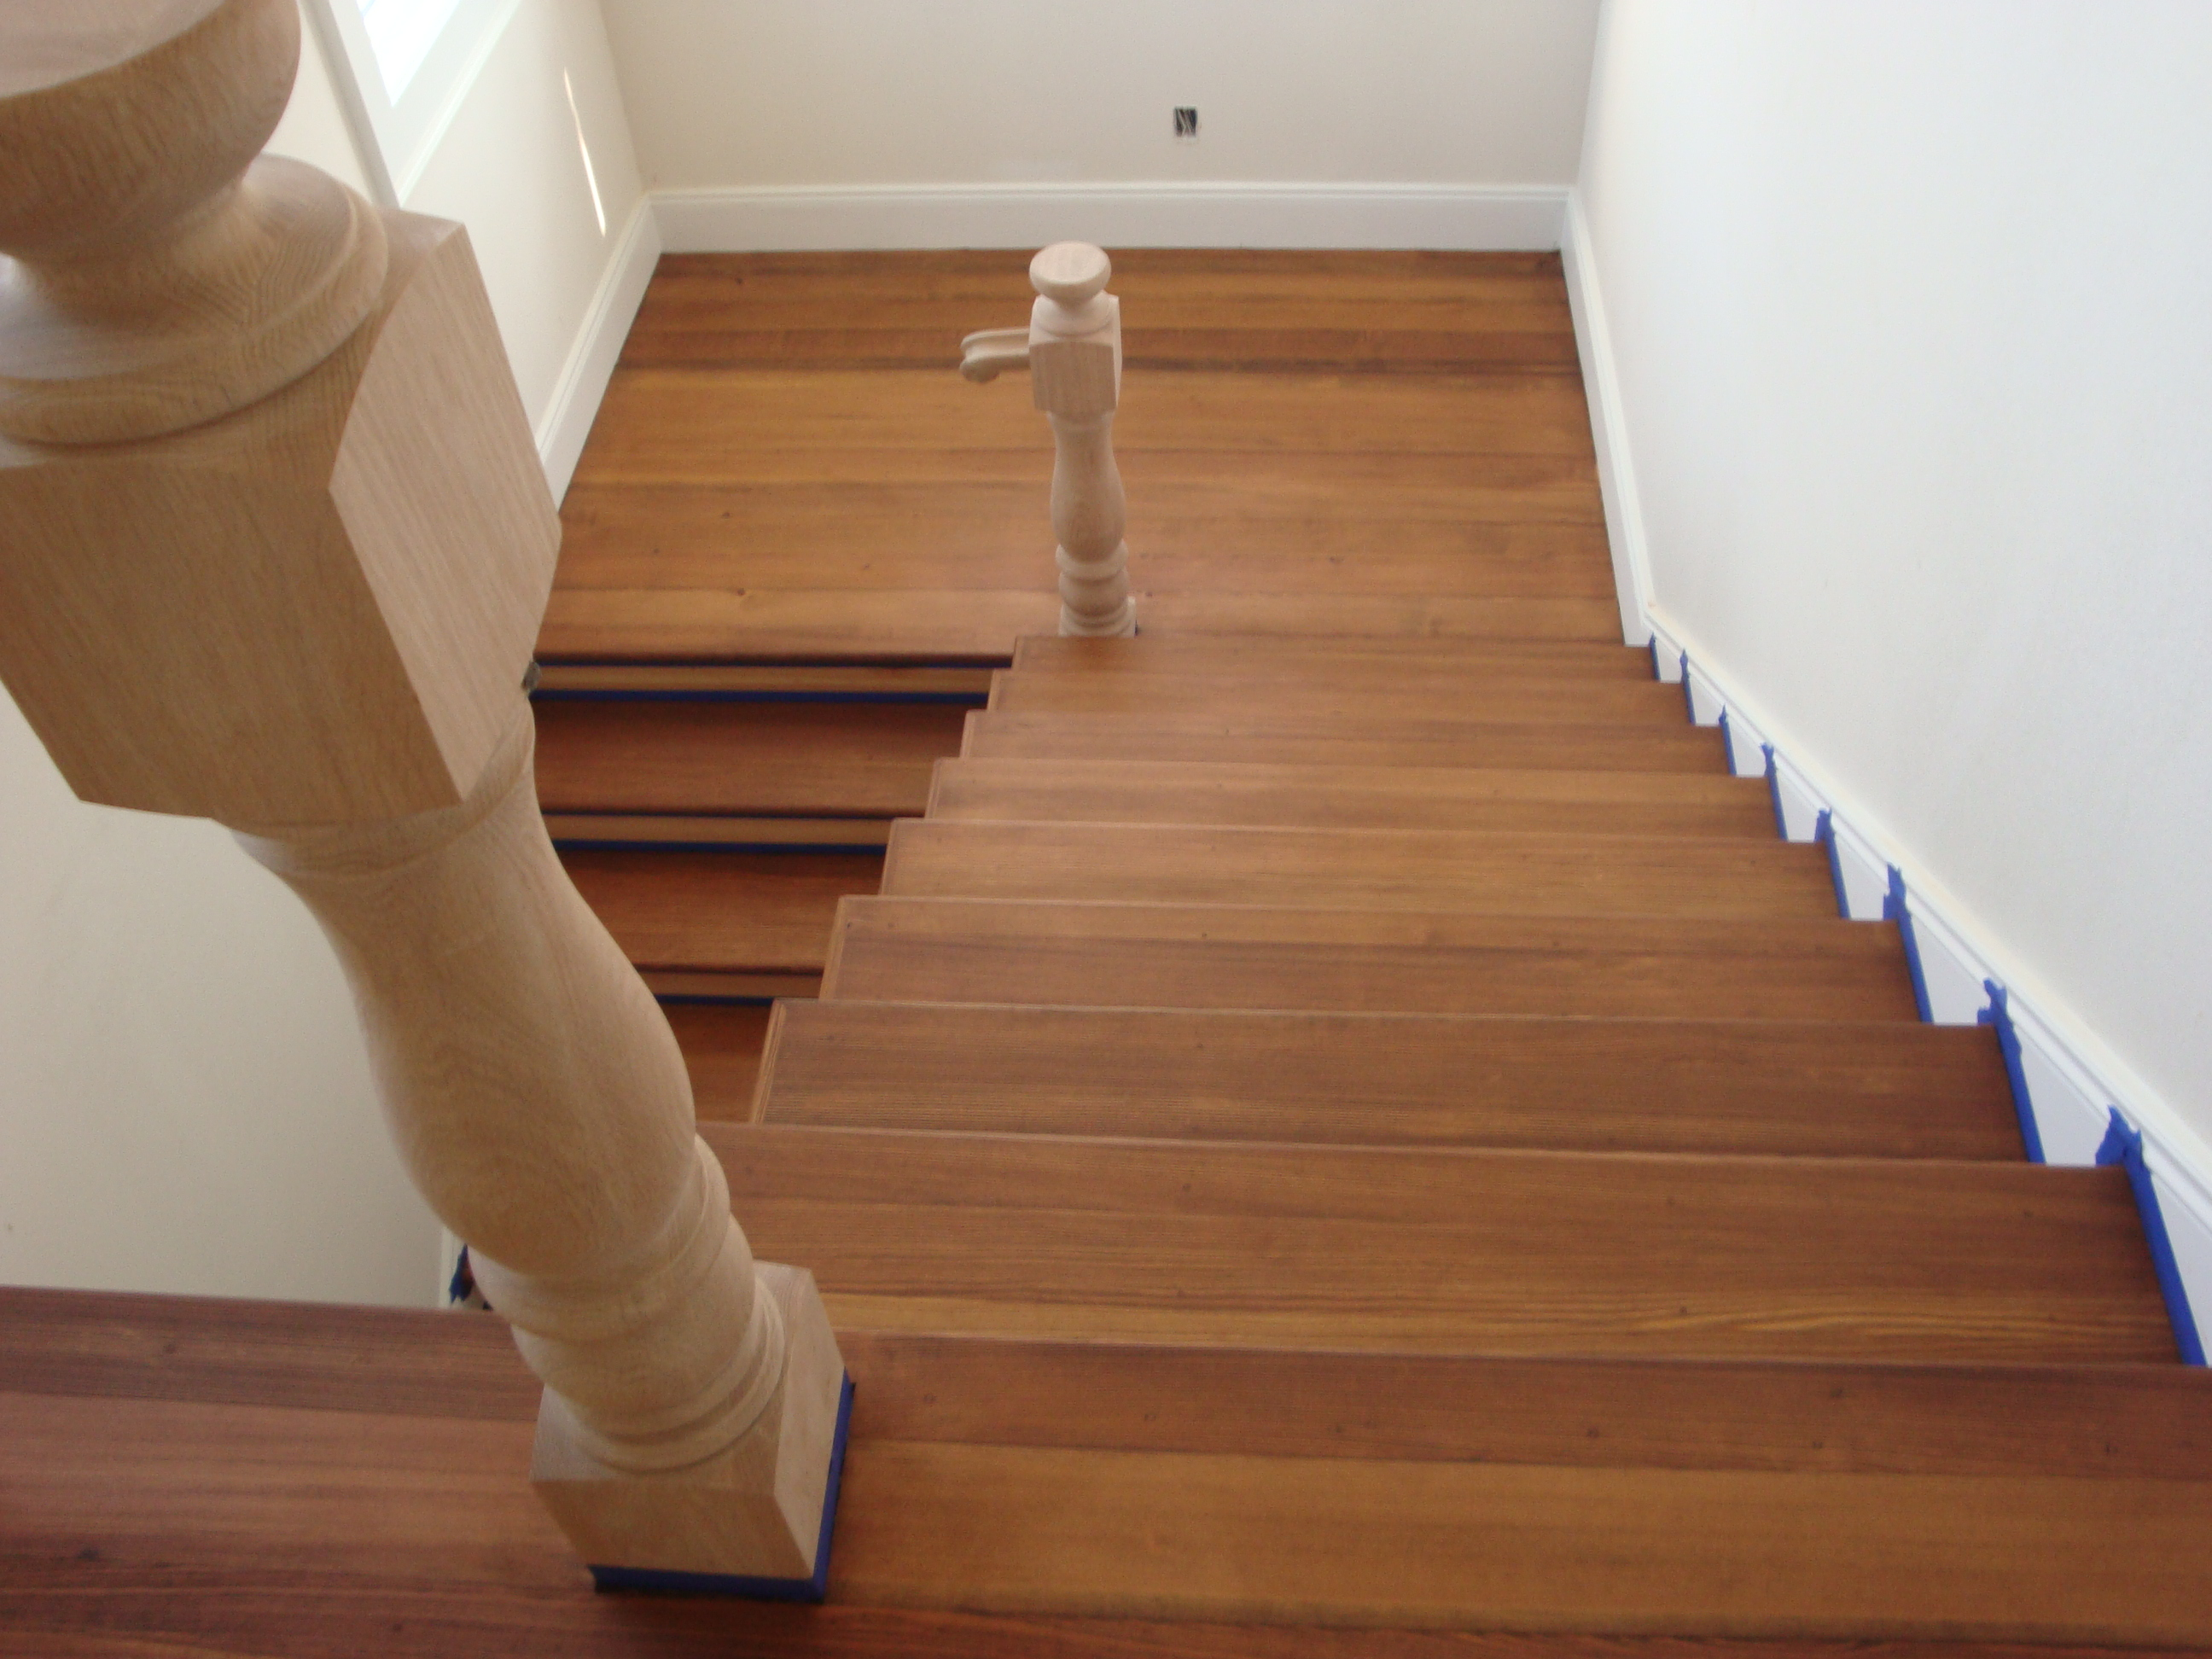 Kelley's Wood Floors - Est. 1945 - Central TX Wood Flooring Experts ...